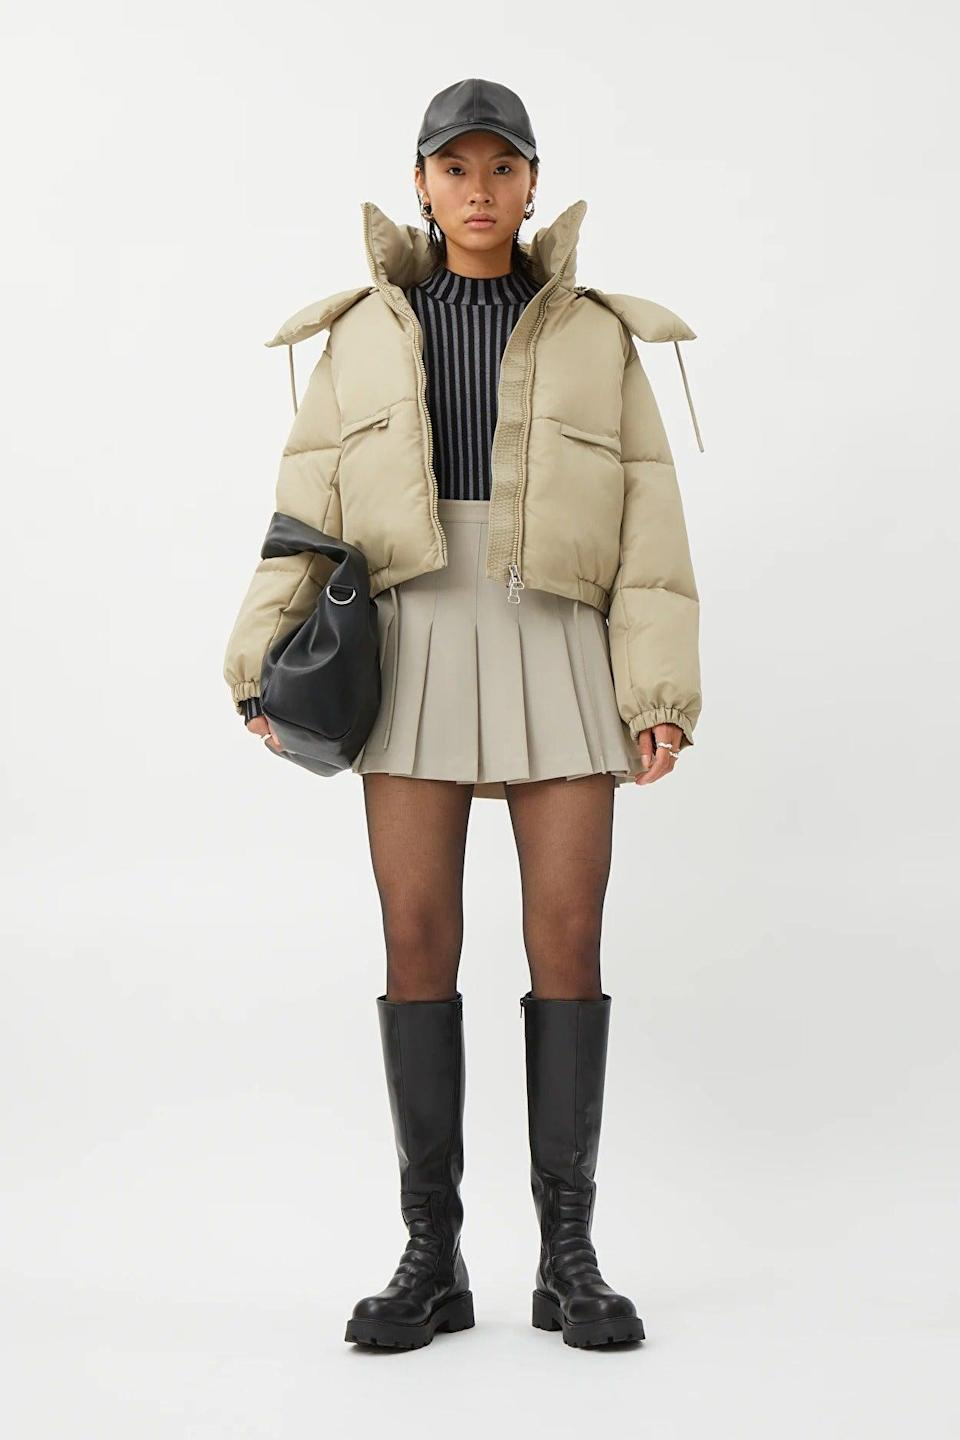 """<br><br><strong>Weekday</strong> Hanna Short Puffer Jacket, $, available at <a href=""""https://www.weekday.com/en_gbp/women/jackets-coats/product.hanna-short-puffer-jacket-beige.0961244001.html"""" rel=""""nofollow noopener"""" target=""""_blank"""" data-ylk=""""slk:Weekday"""" class=""""link rapid-noclick-resp"""">Weekday</a>"""